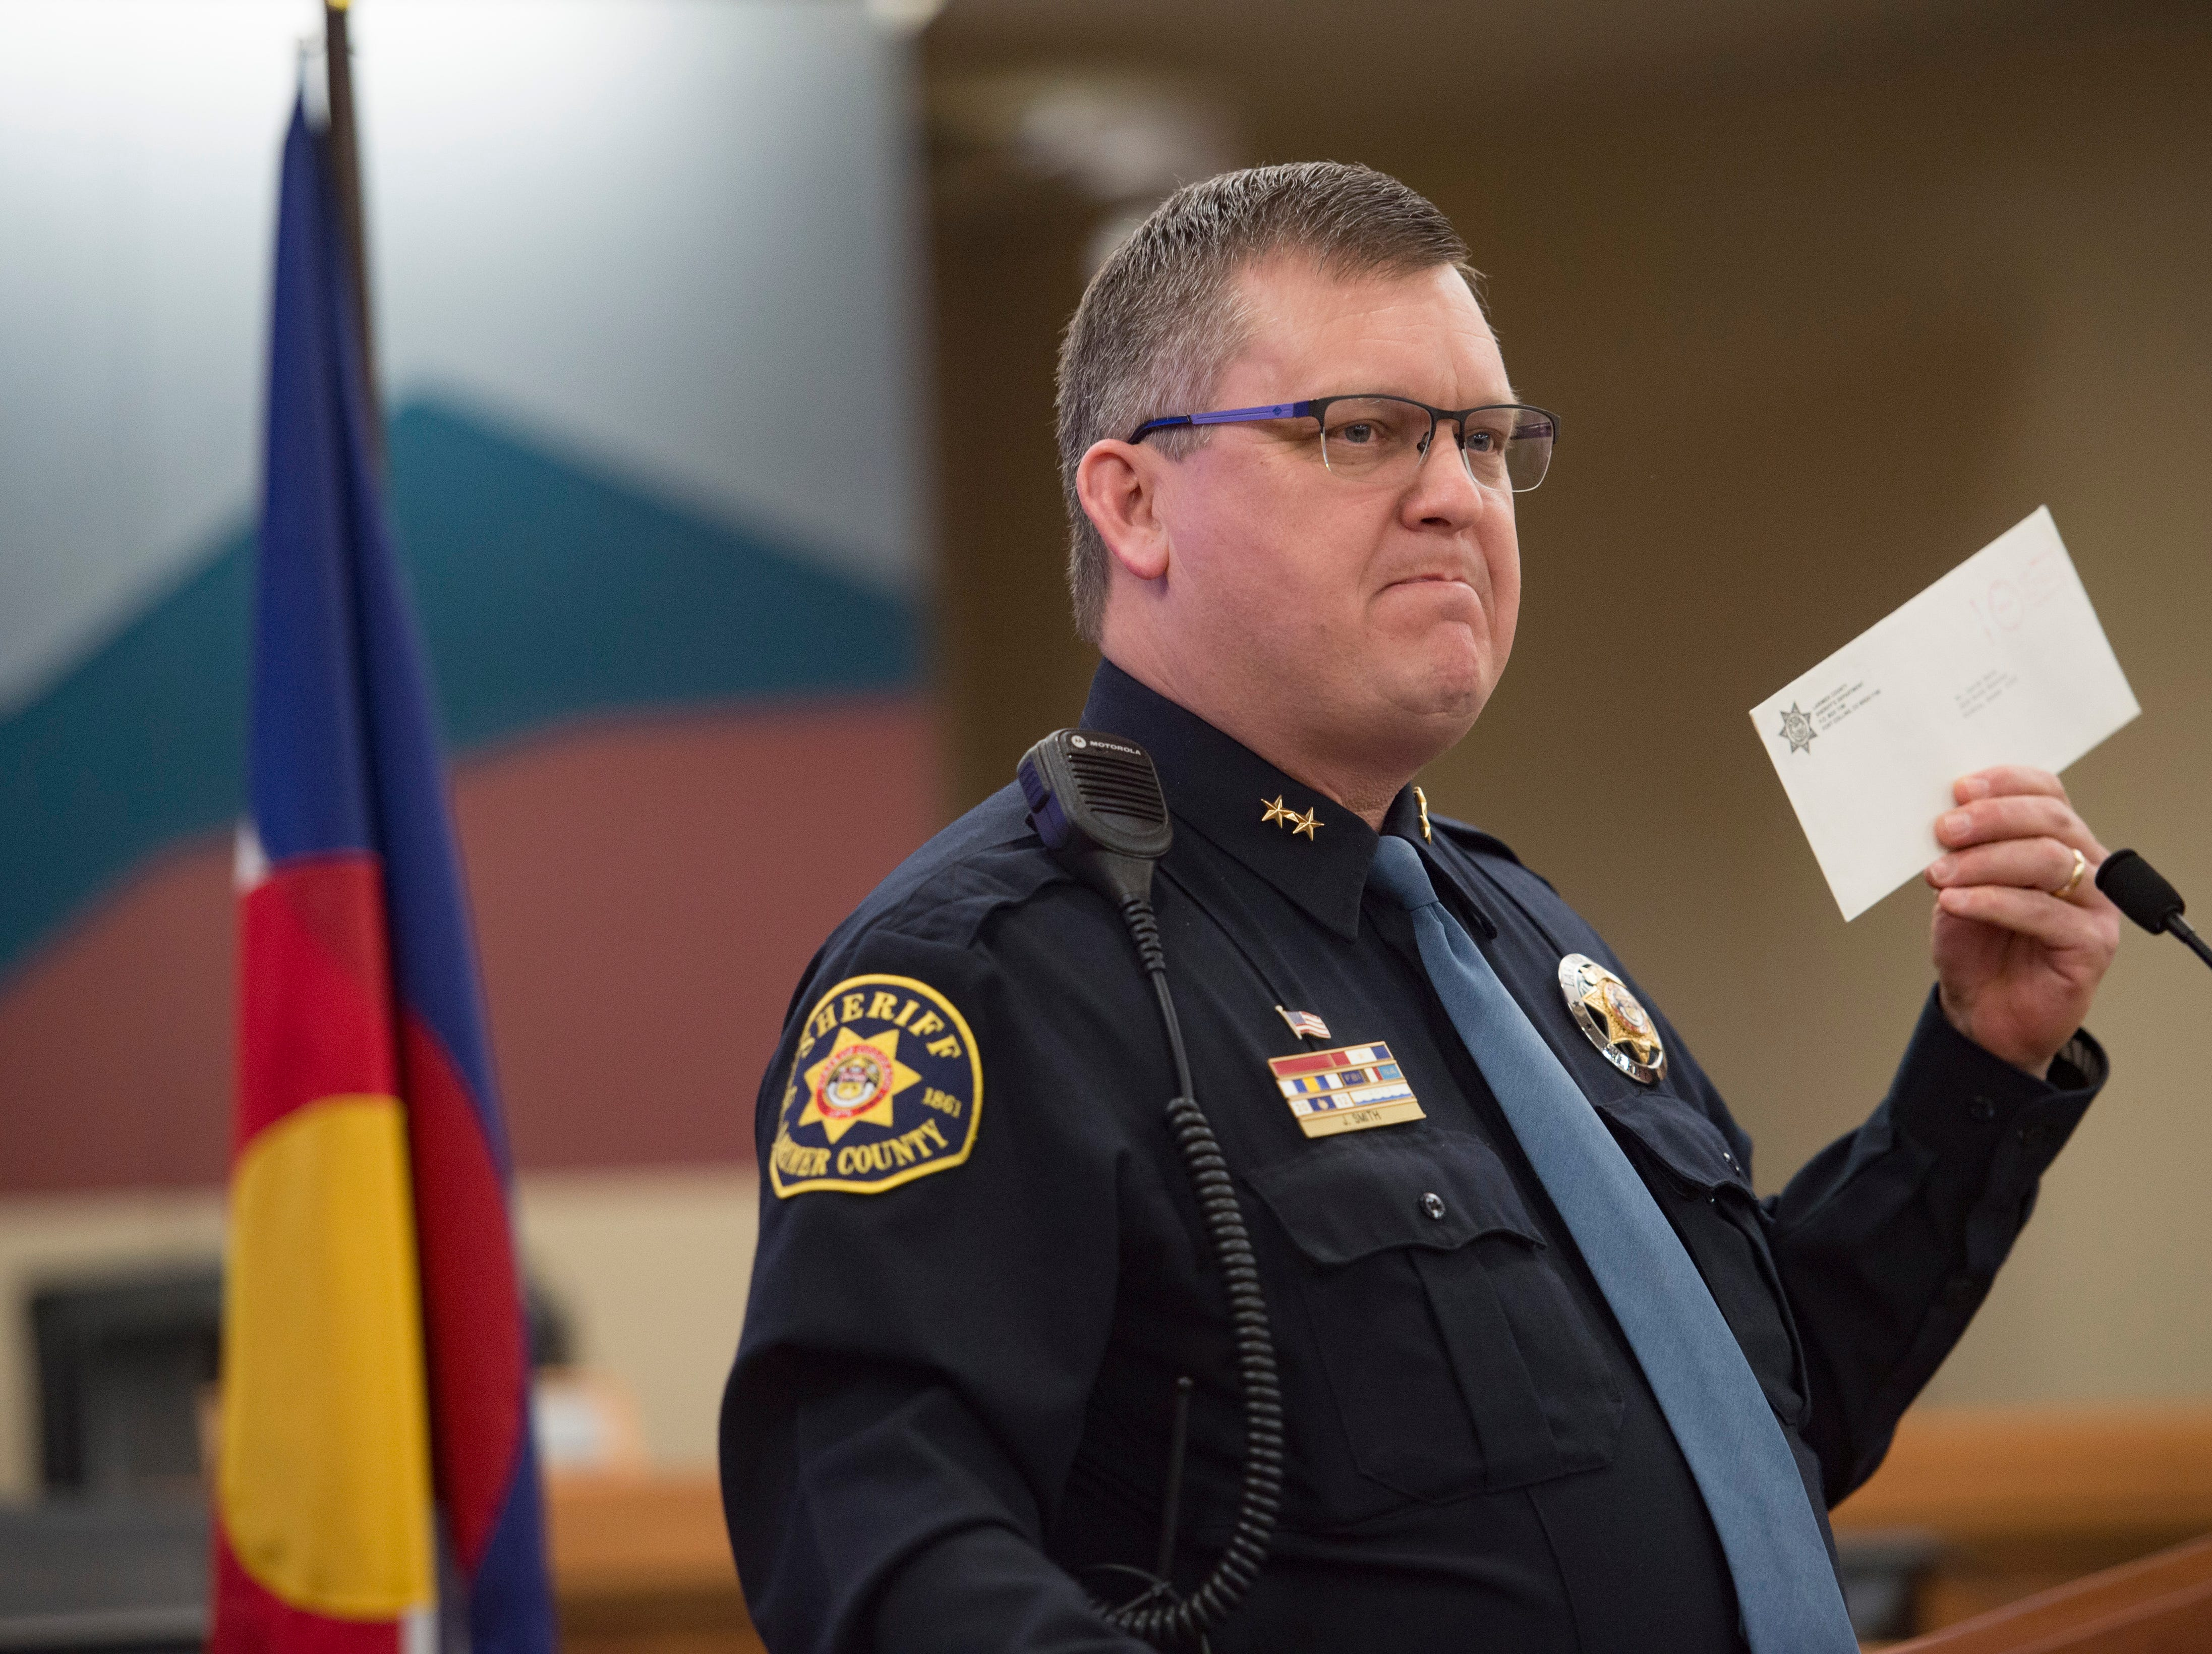 Larimer County Sheriff Justin Smith holds an envelope with his first contract he signed after joining the Sheriff's office in 1991 after he is sworn in for another term at the Larimer County Courthouse on Tuesday, January 8, 2019.